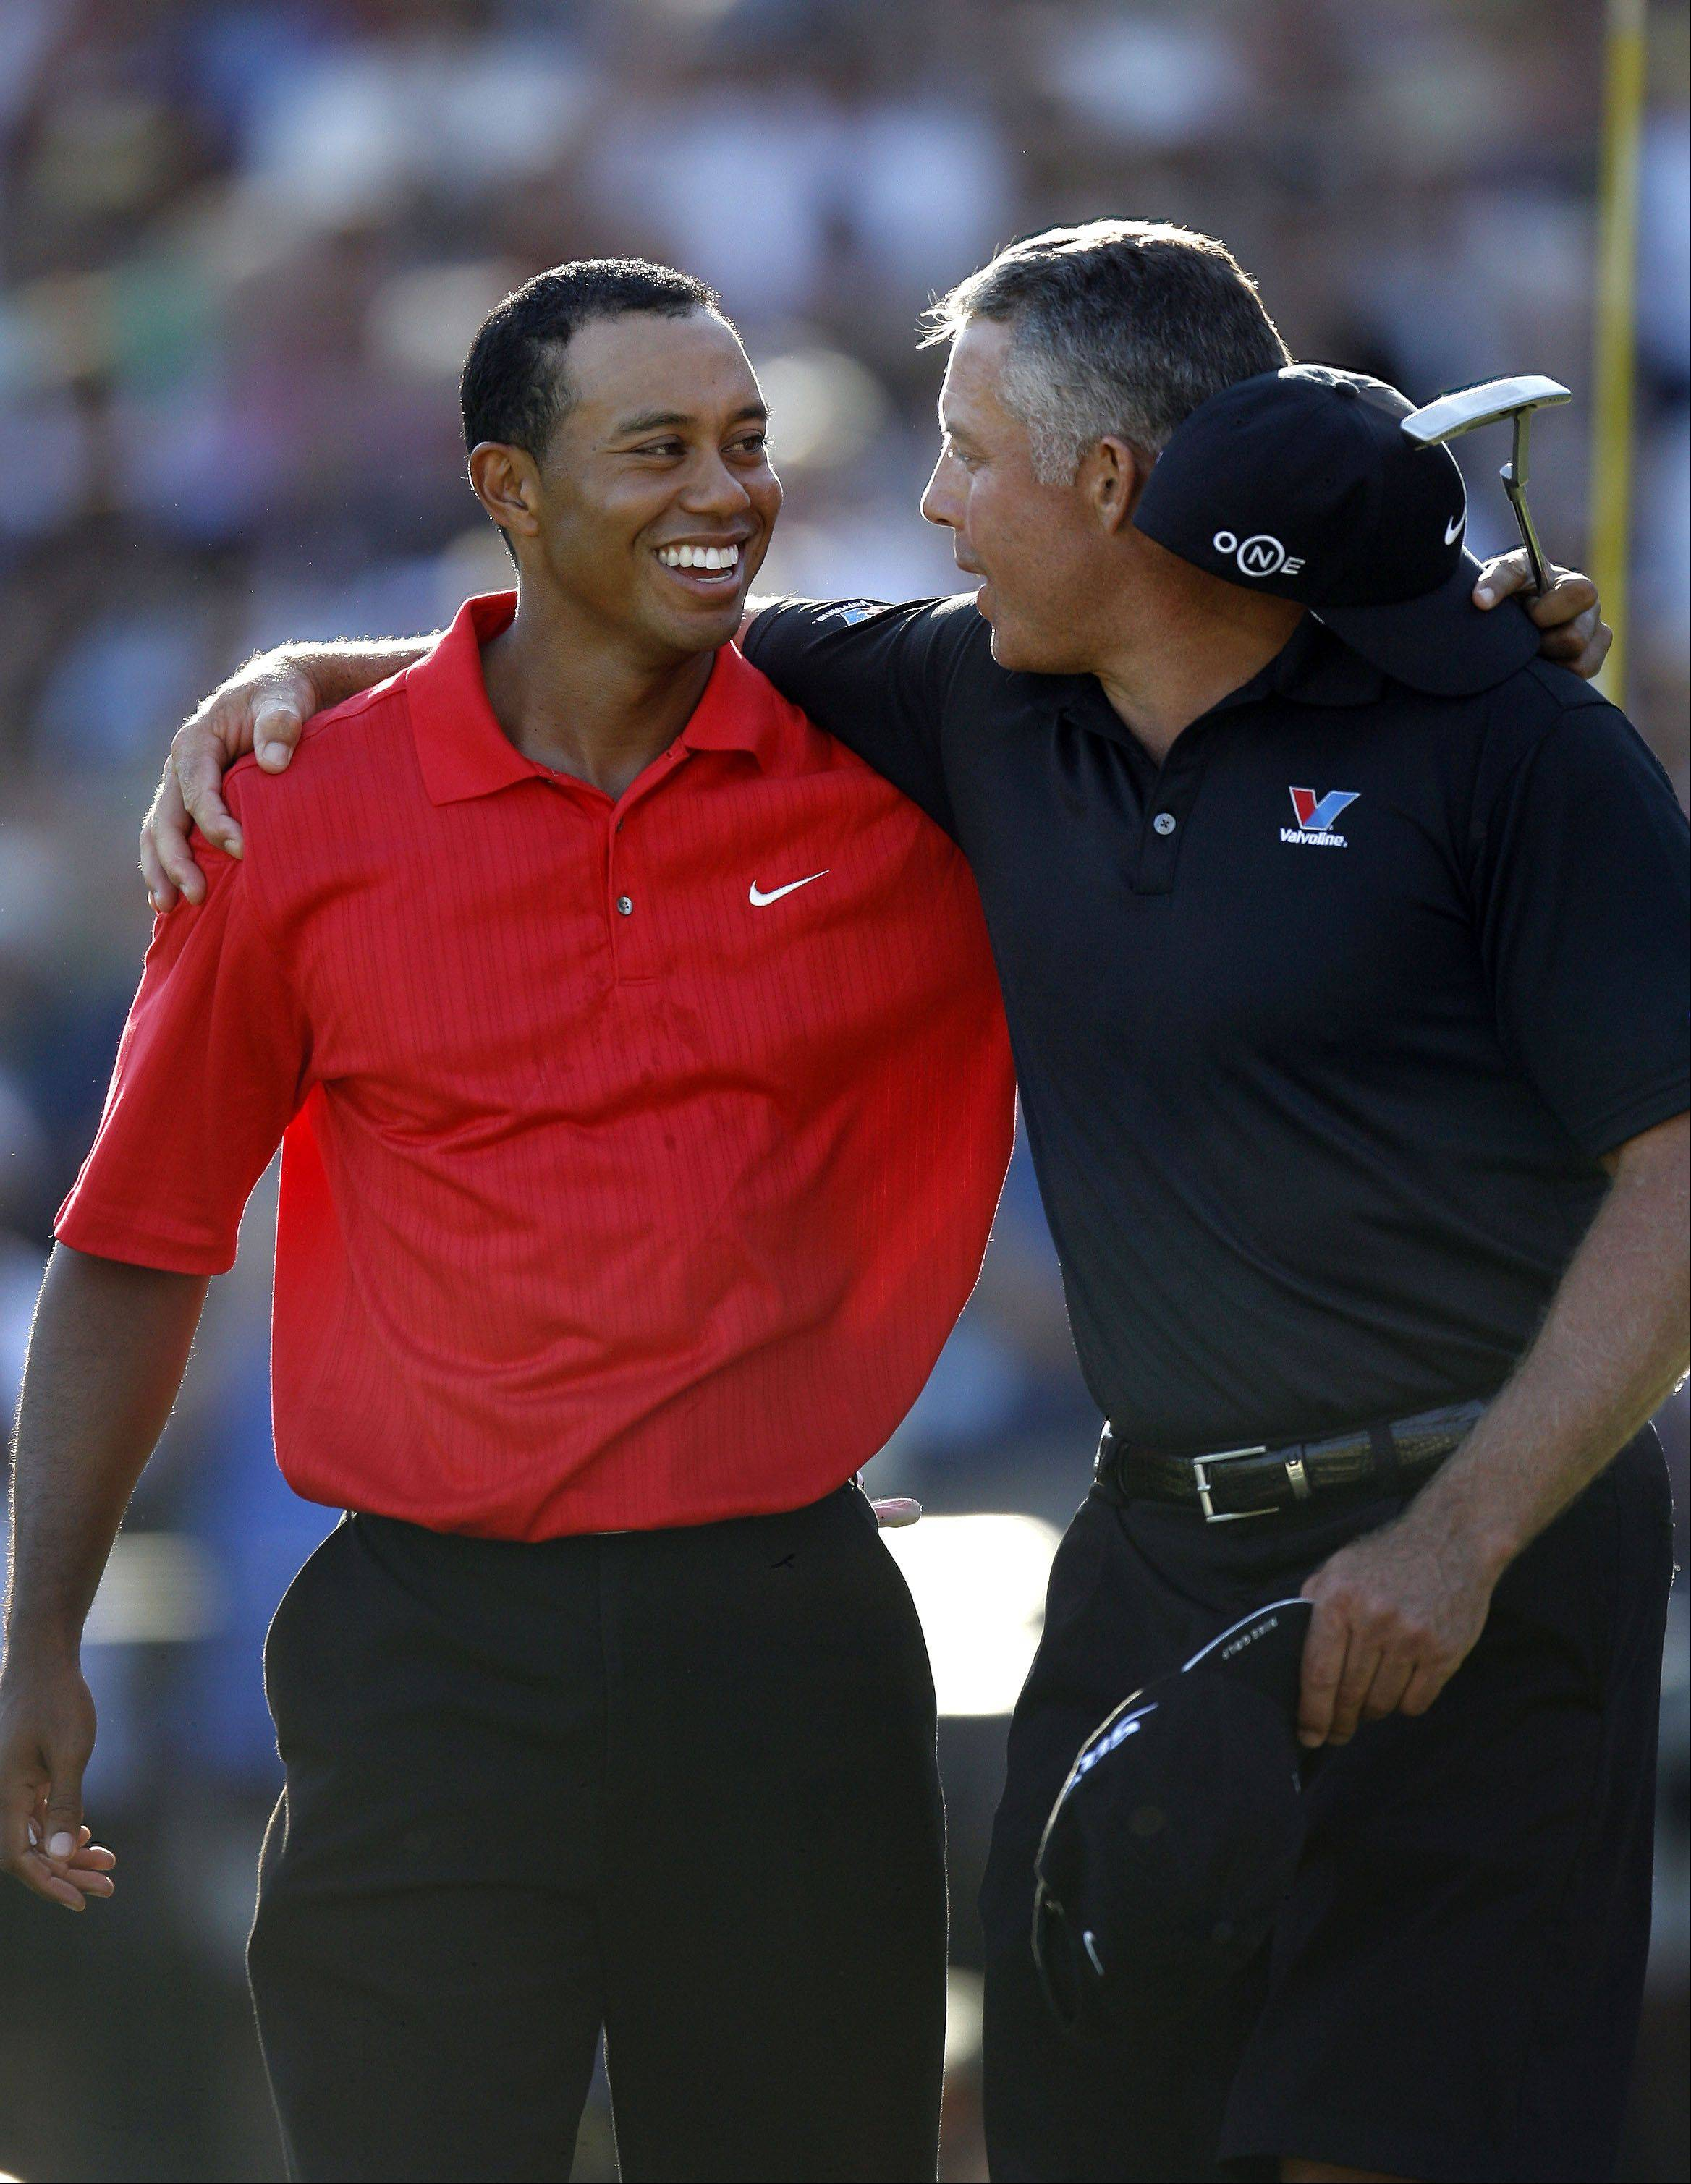 Round four of the 88th PGA Championship Sunday, August 20, 2006 at Medinah Country Club in Medinah. Tiger and Steve Williams celebrate.